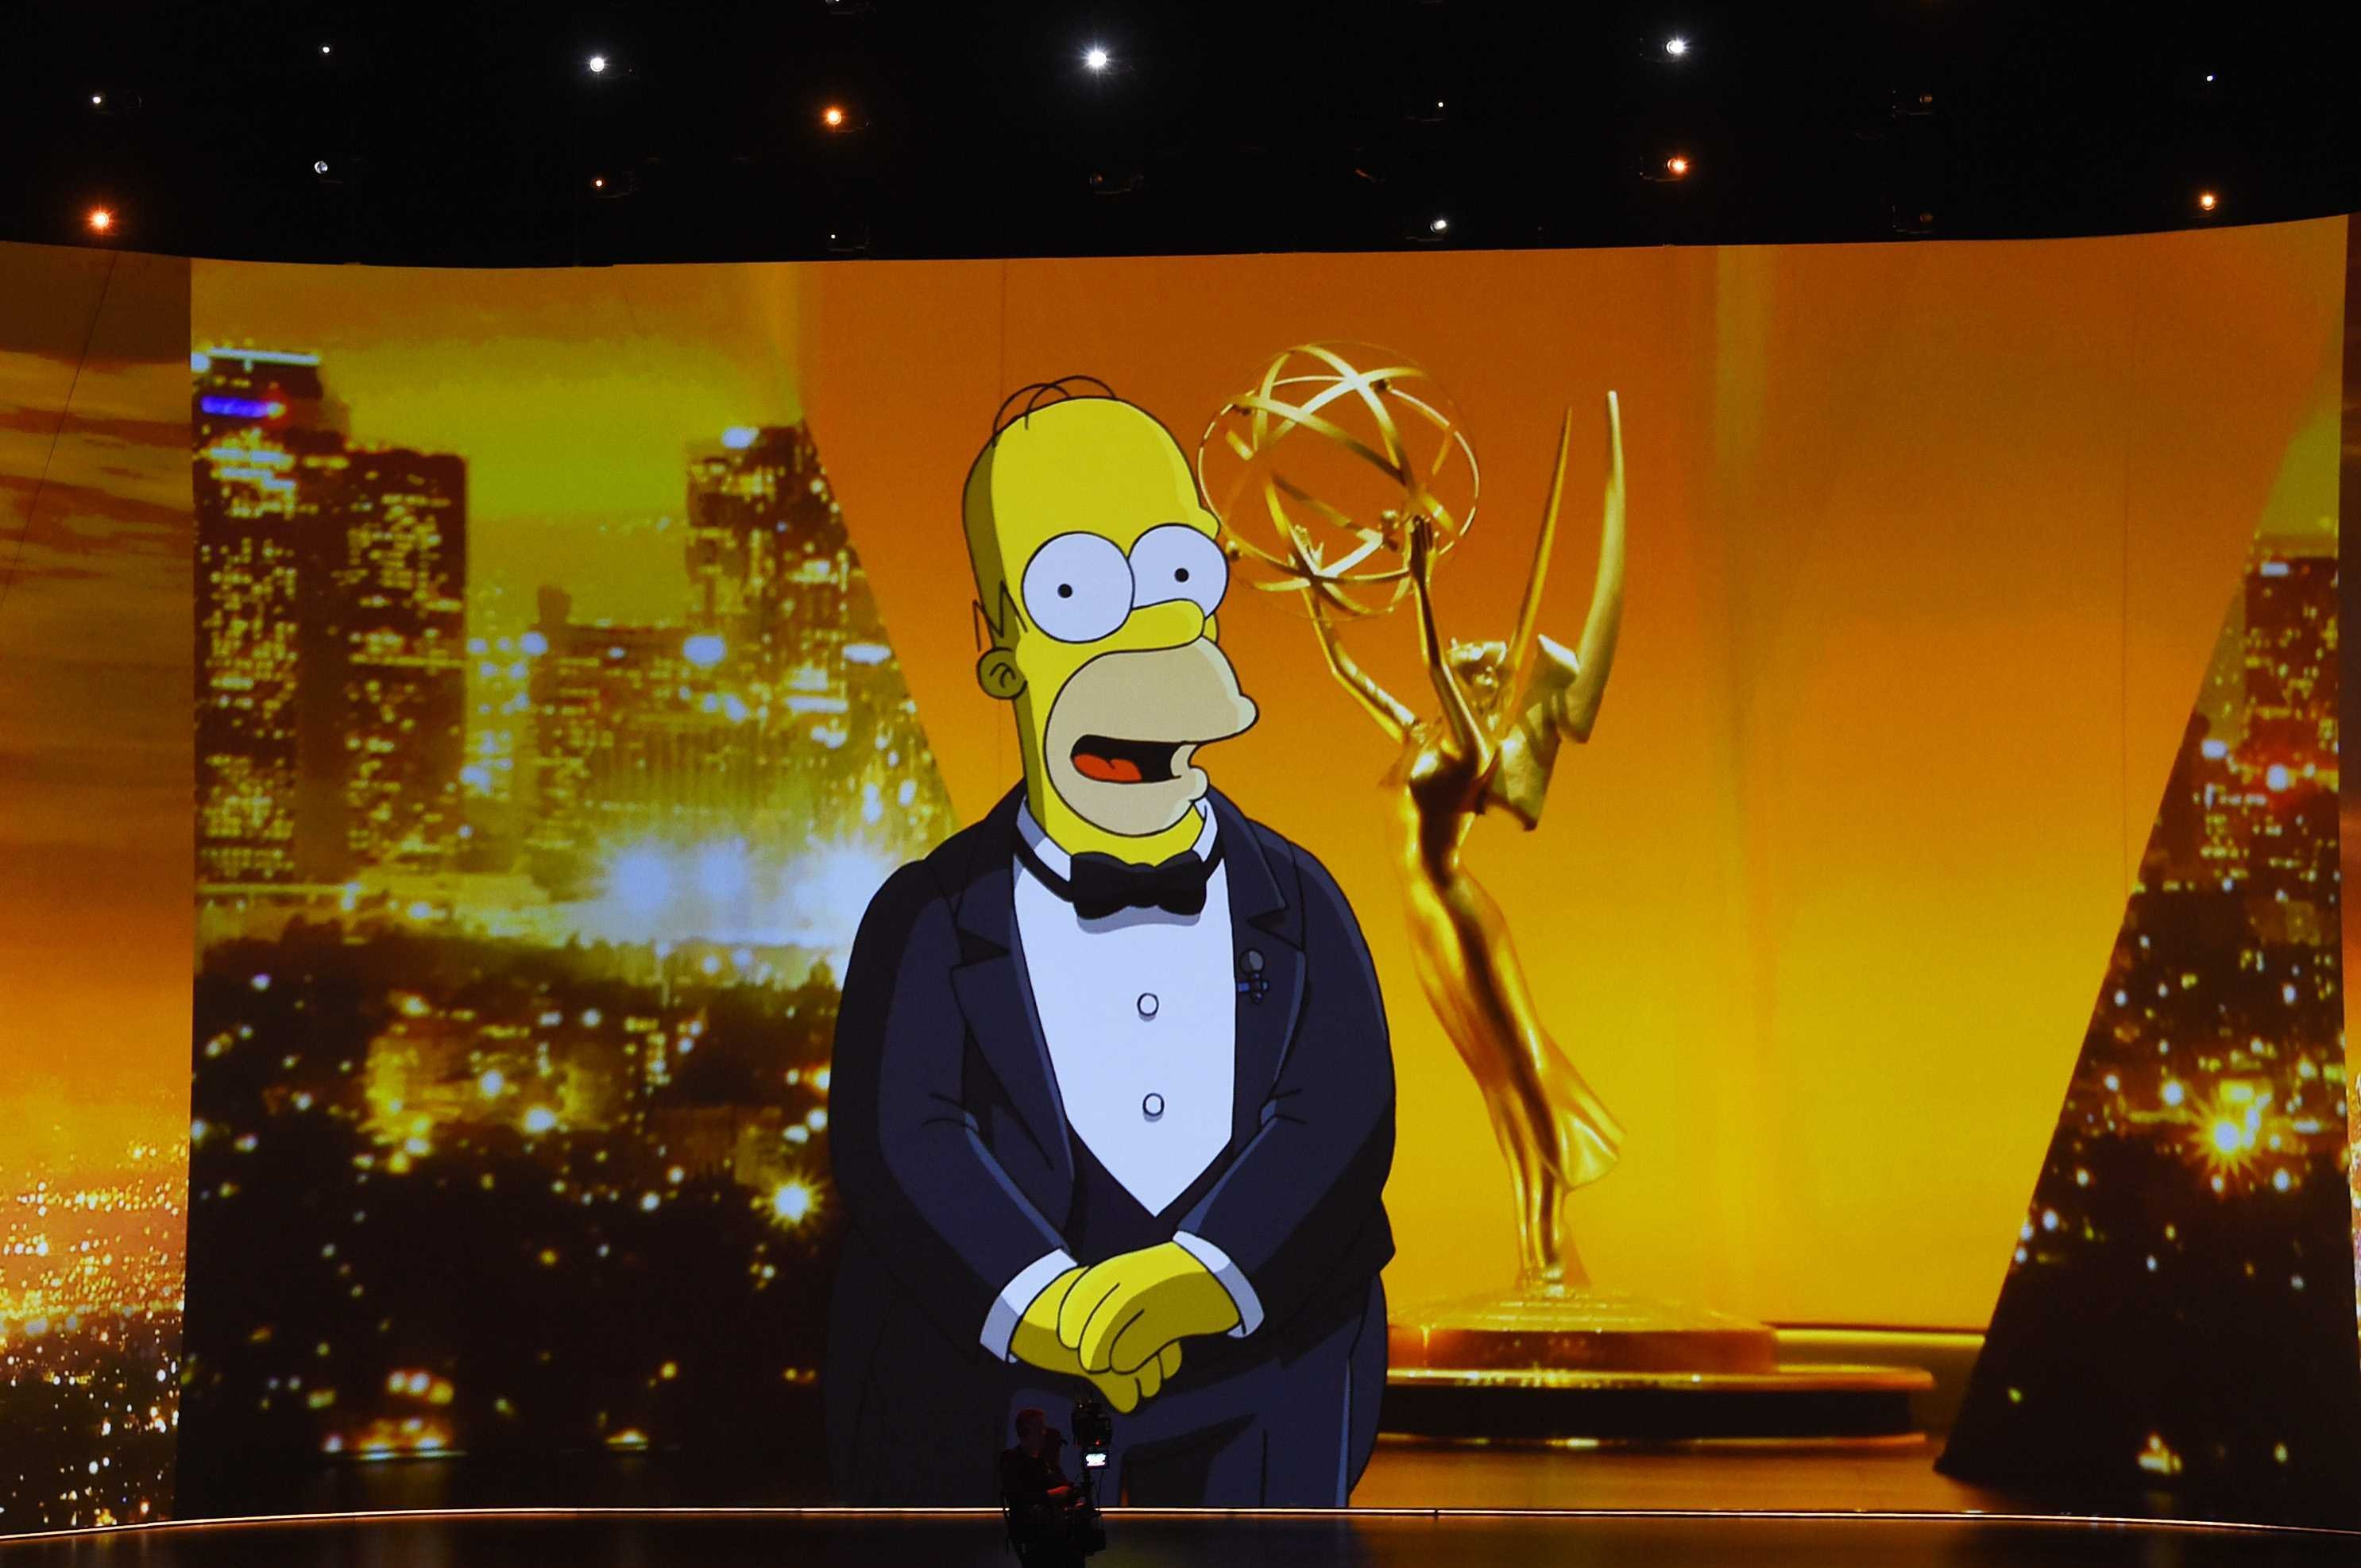 A video of Homer Simpson speaking is projected on a screen during the 71st Emmy Awards at Microsoft Theater in Los Angeles, California, U.S., Sept. 22, 2019. (Getty Images)